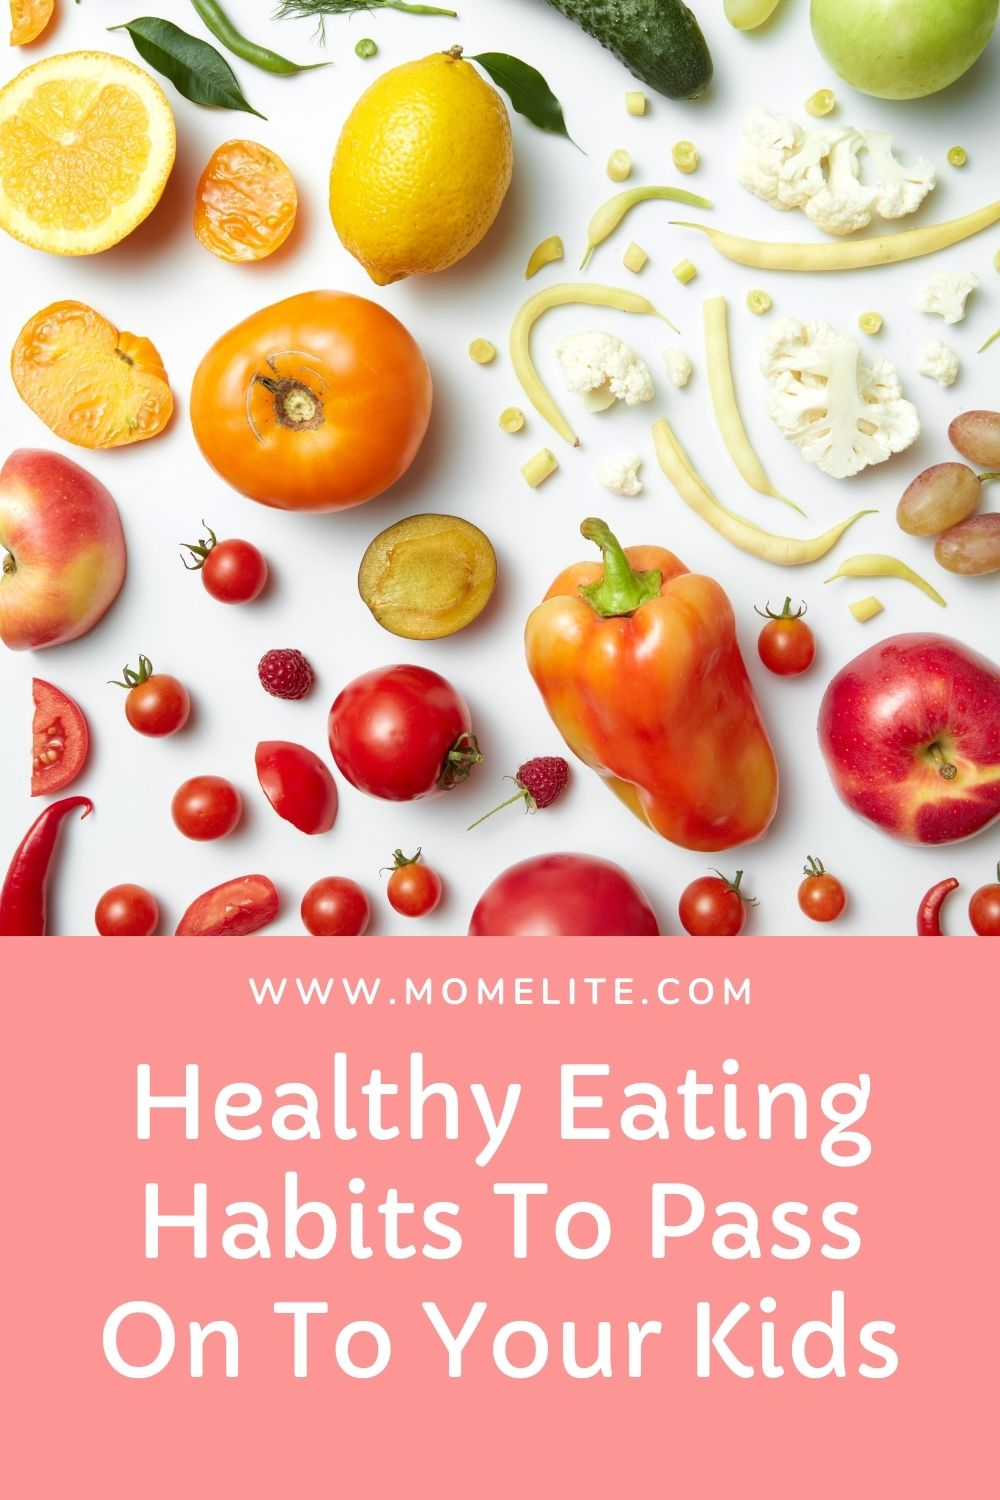 Healthy Eating Habits To Pass On To Your Kids